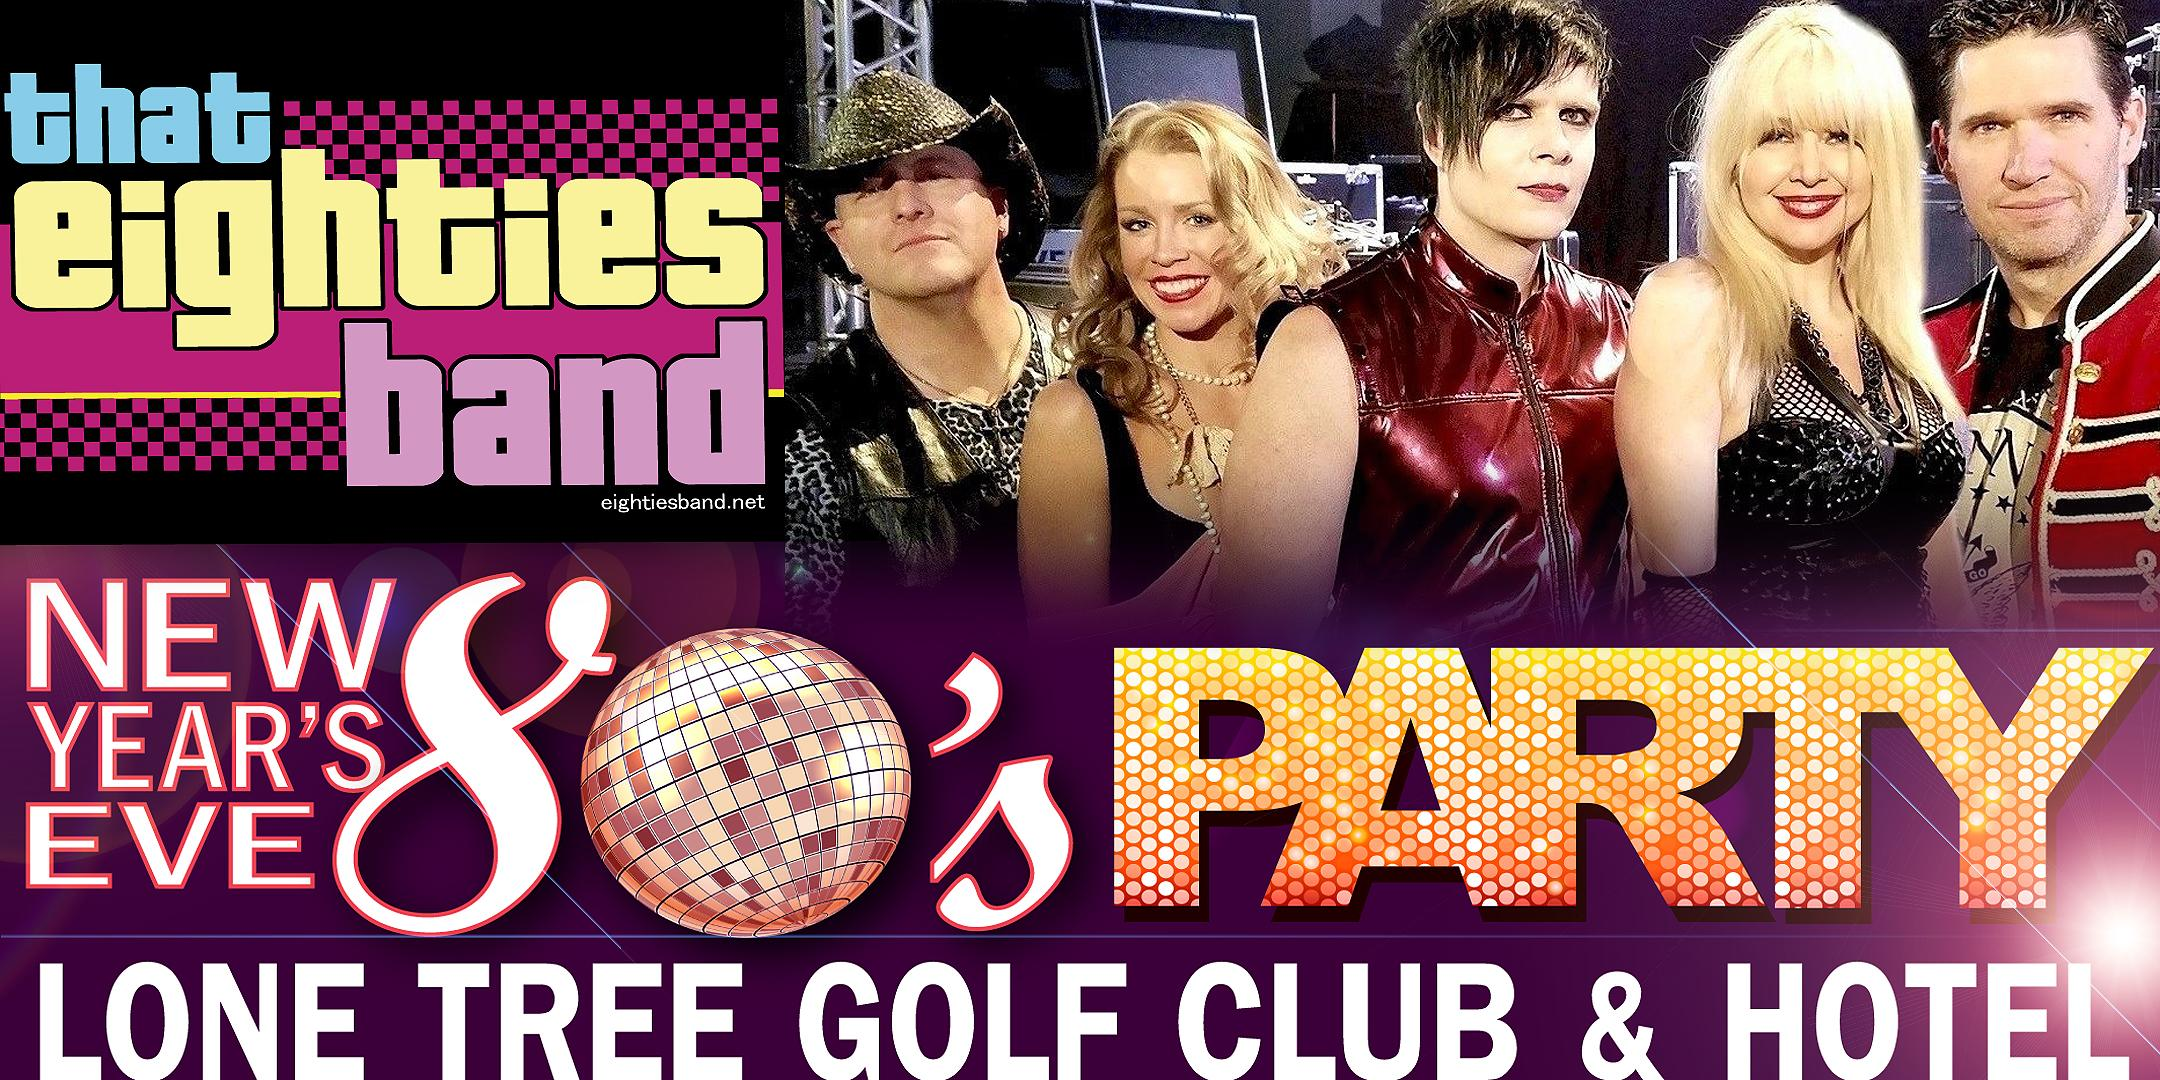 New Year's Eve 80's Party at Lone Tree Golf Club & Hotel